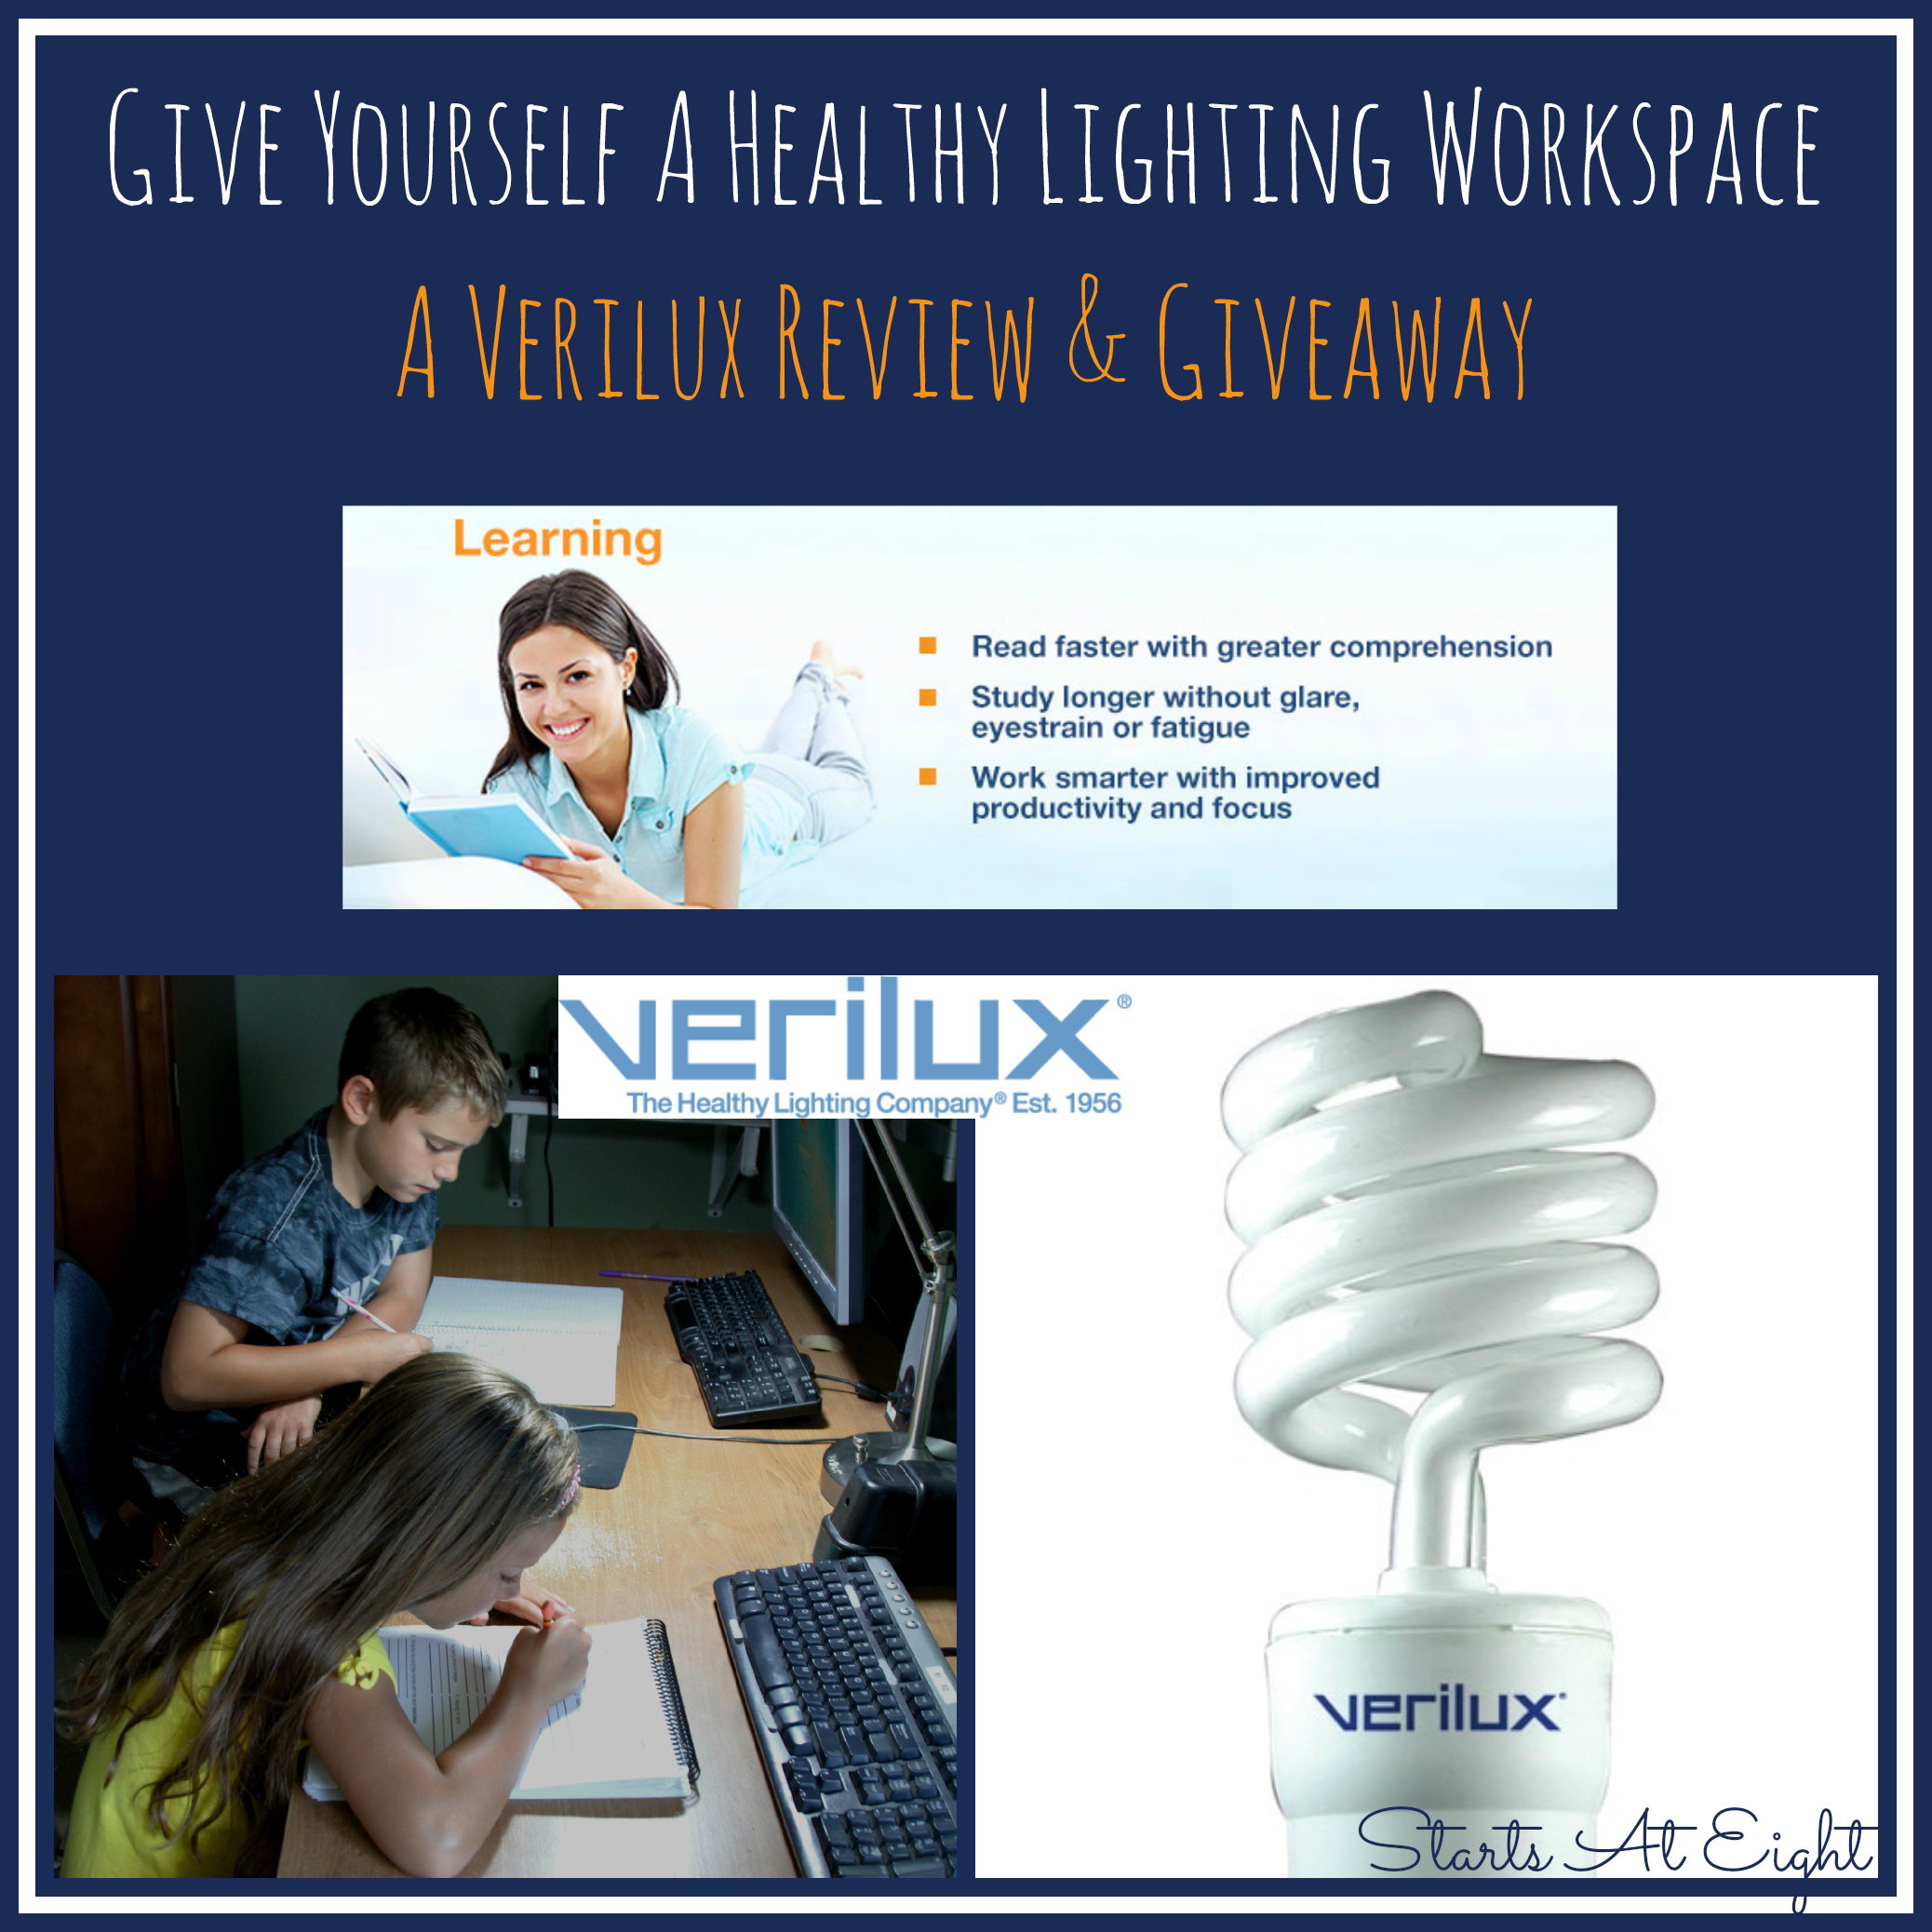 Give Yourself A Healthy Lighting Workspace ~ A Verilux Review u0026 Giveaway - StartsAtEight  sc 1 st  StartsAtEight & Give Yourself A Healthy Lighting Workspace ~ A Verilux Review ... azcodes.com